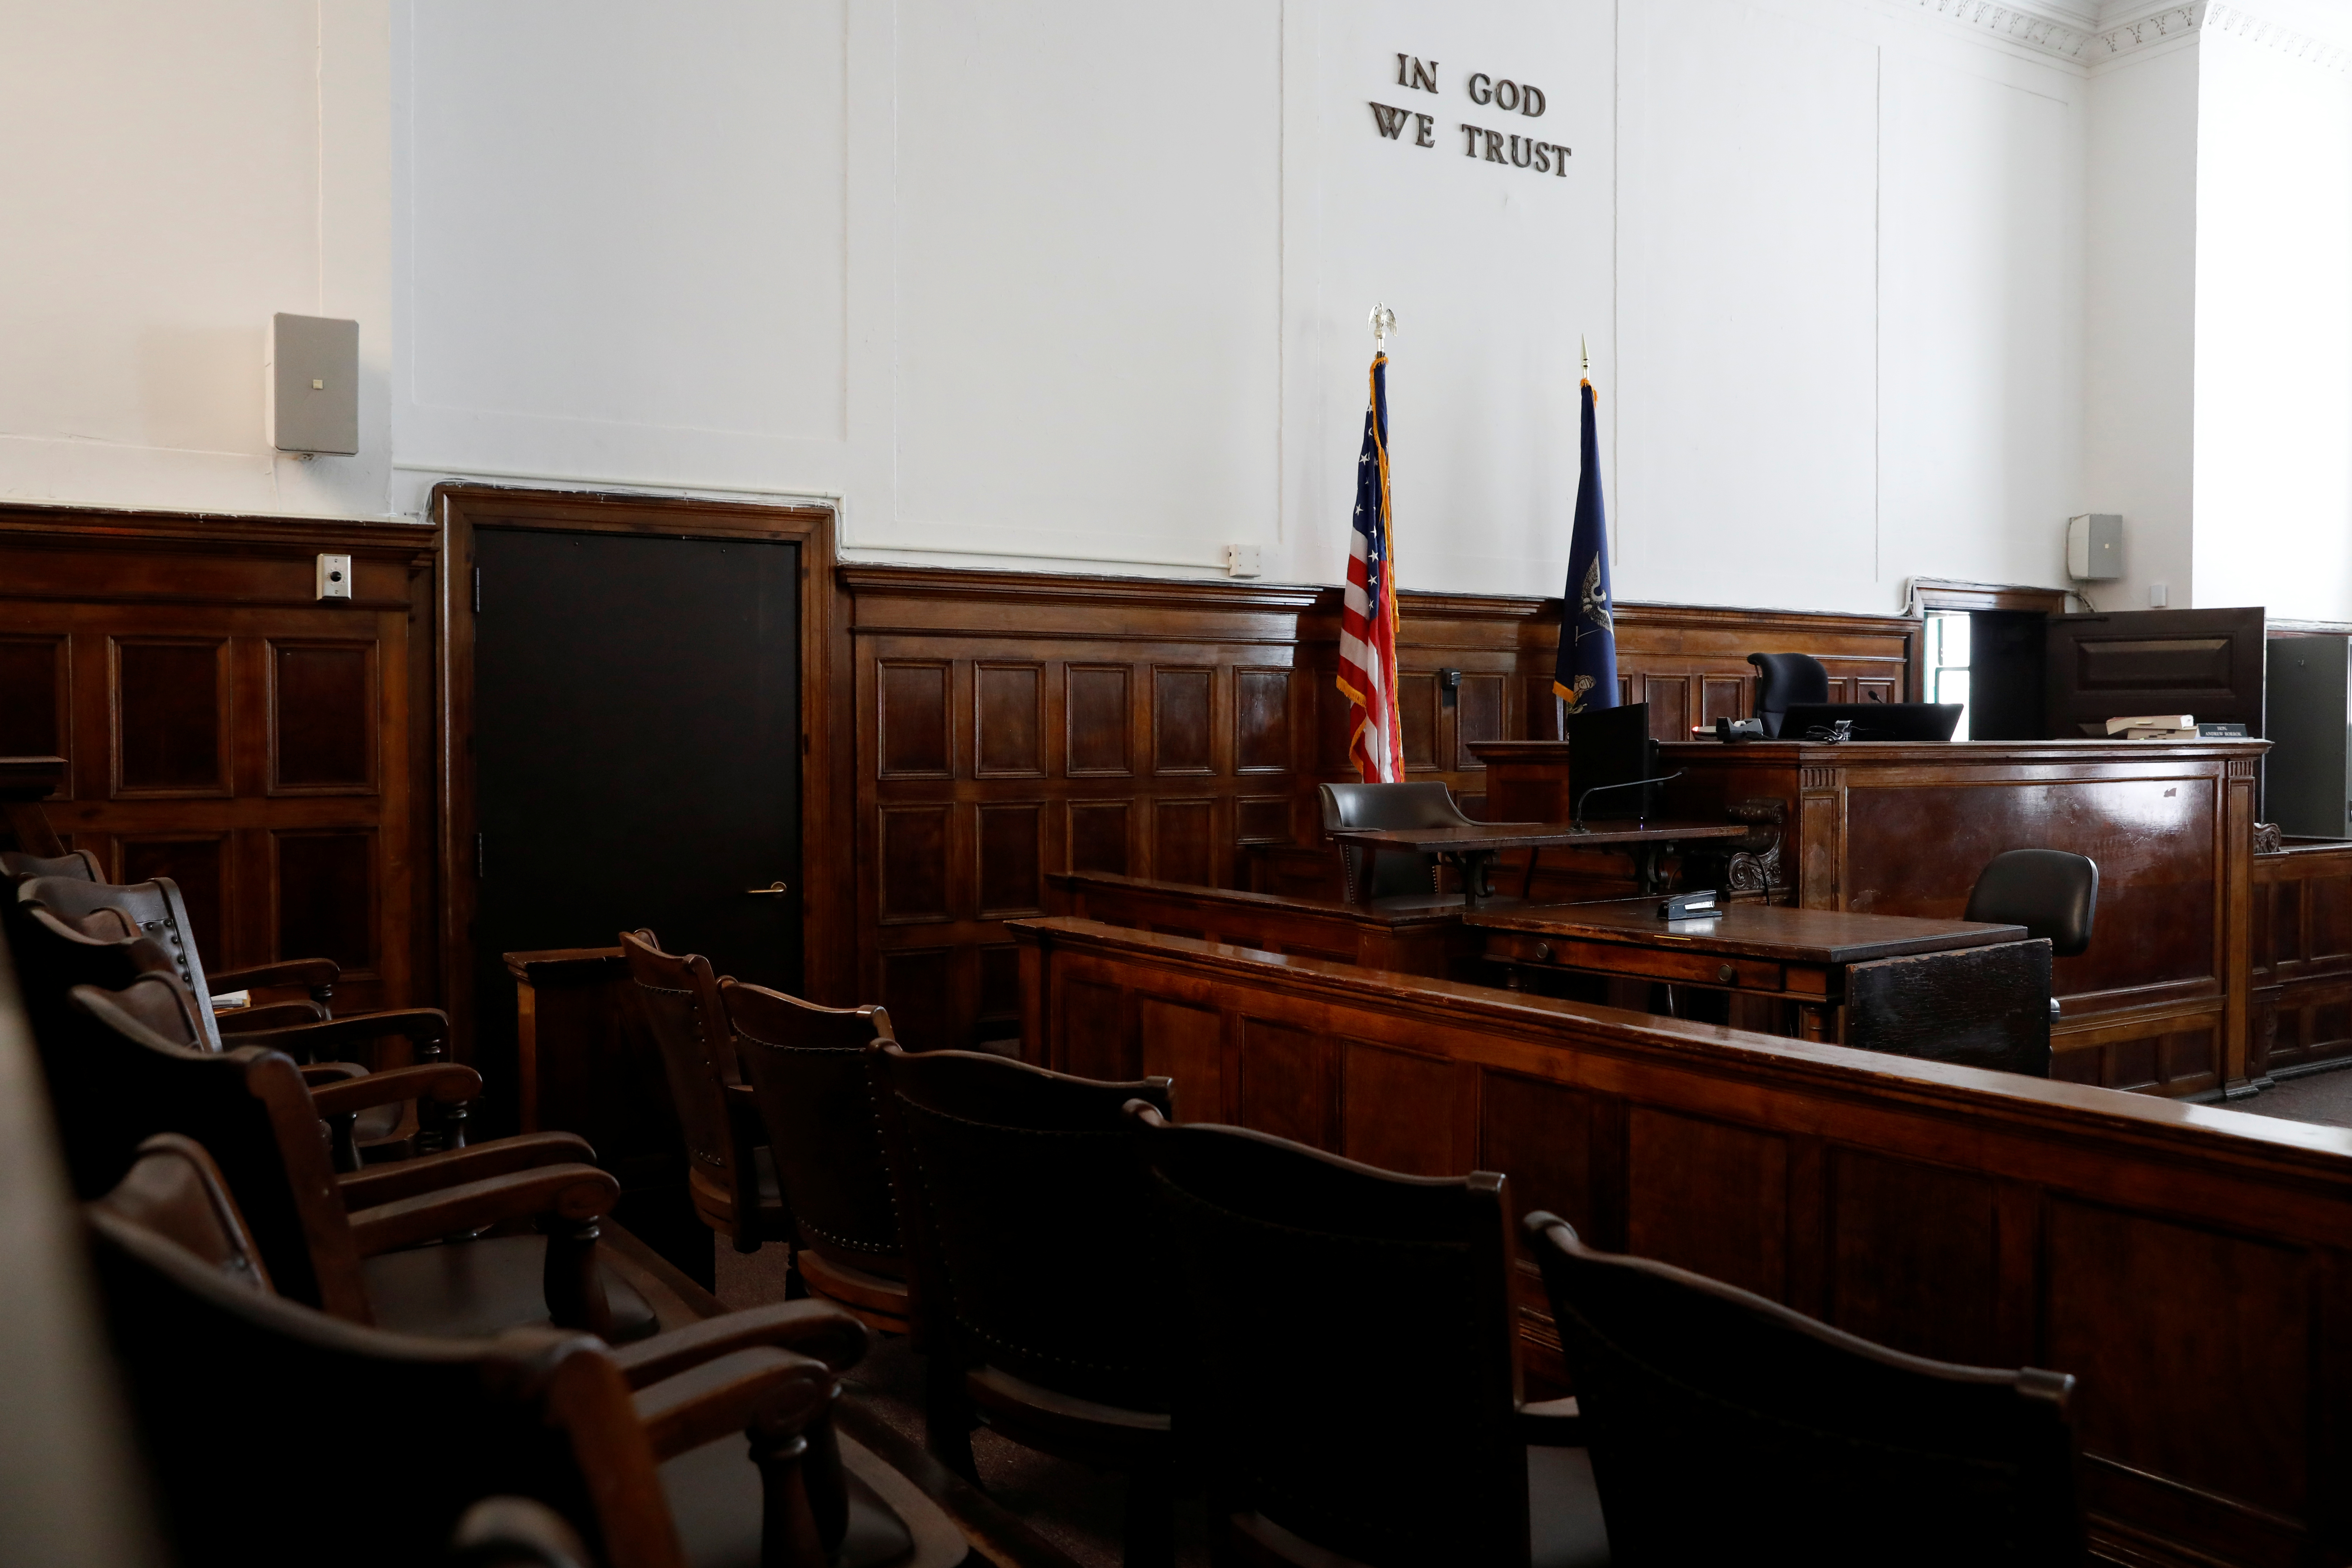 An empty jury box is seen at the New York State Civil Supreme Court in Manhattan, New York City, U.S. REUTERS/Andrew Kelly